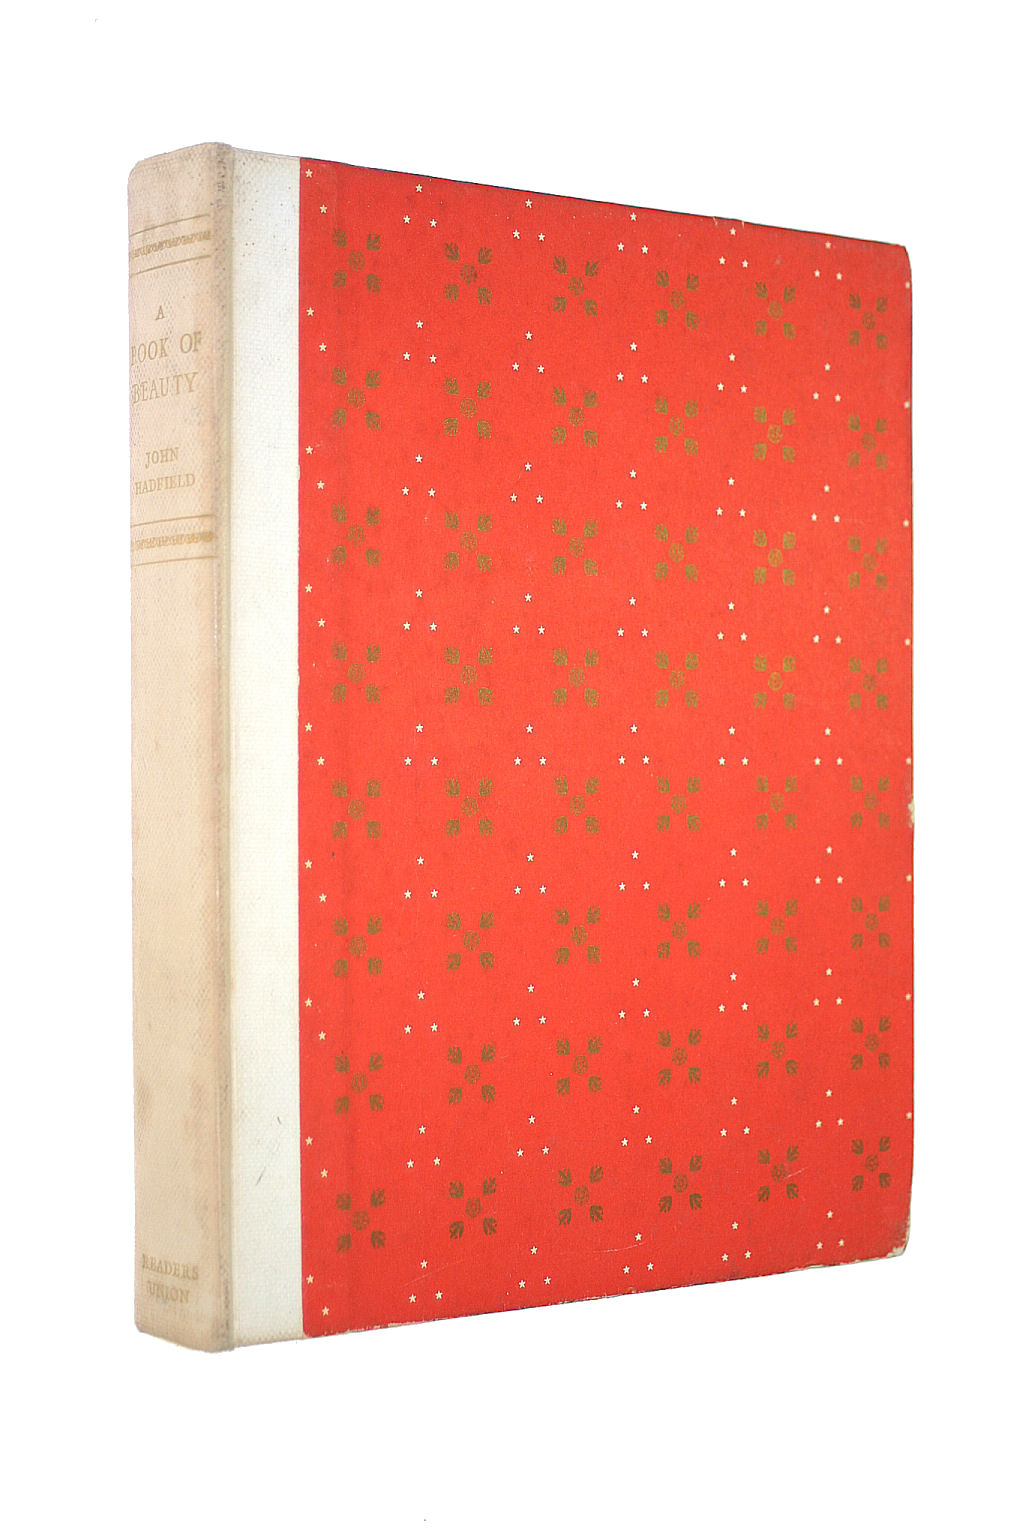 Image for The Book Of Beauty. Edited By E. Allen. With Plates (Unknown Binding)